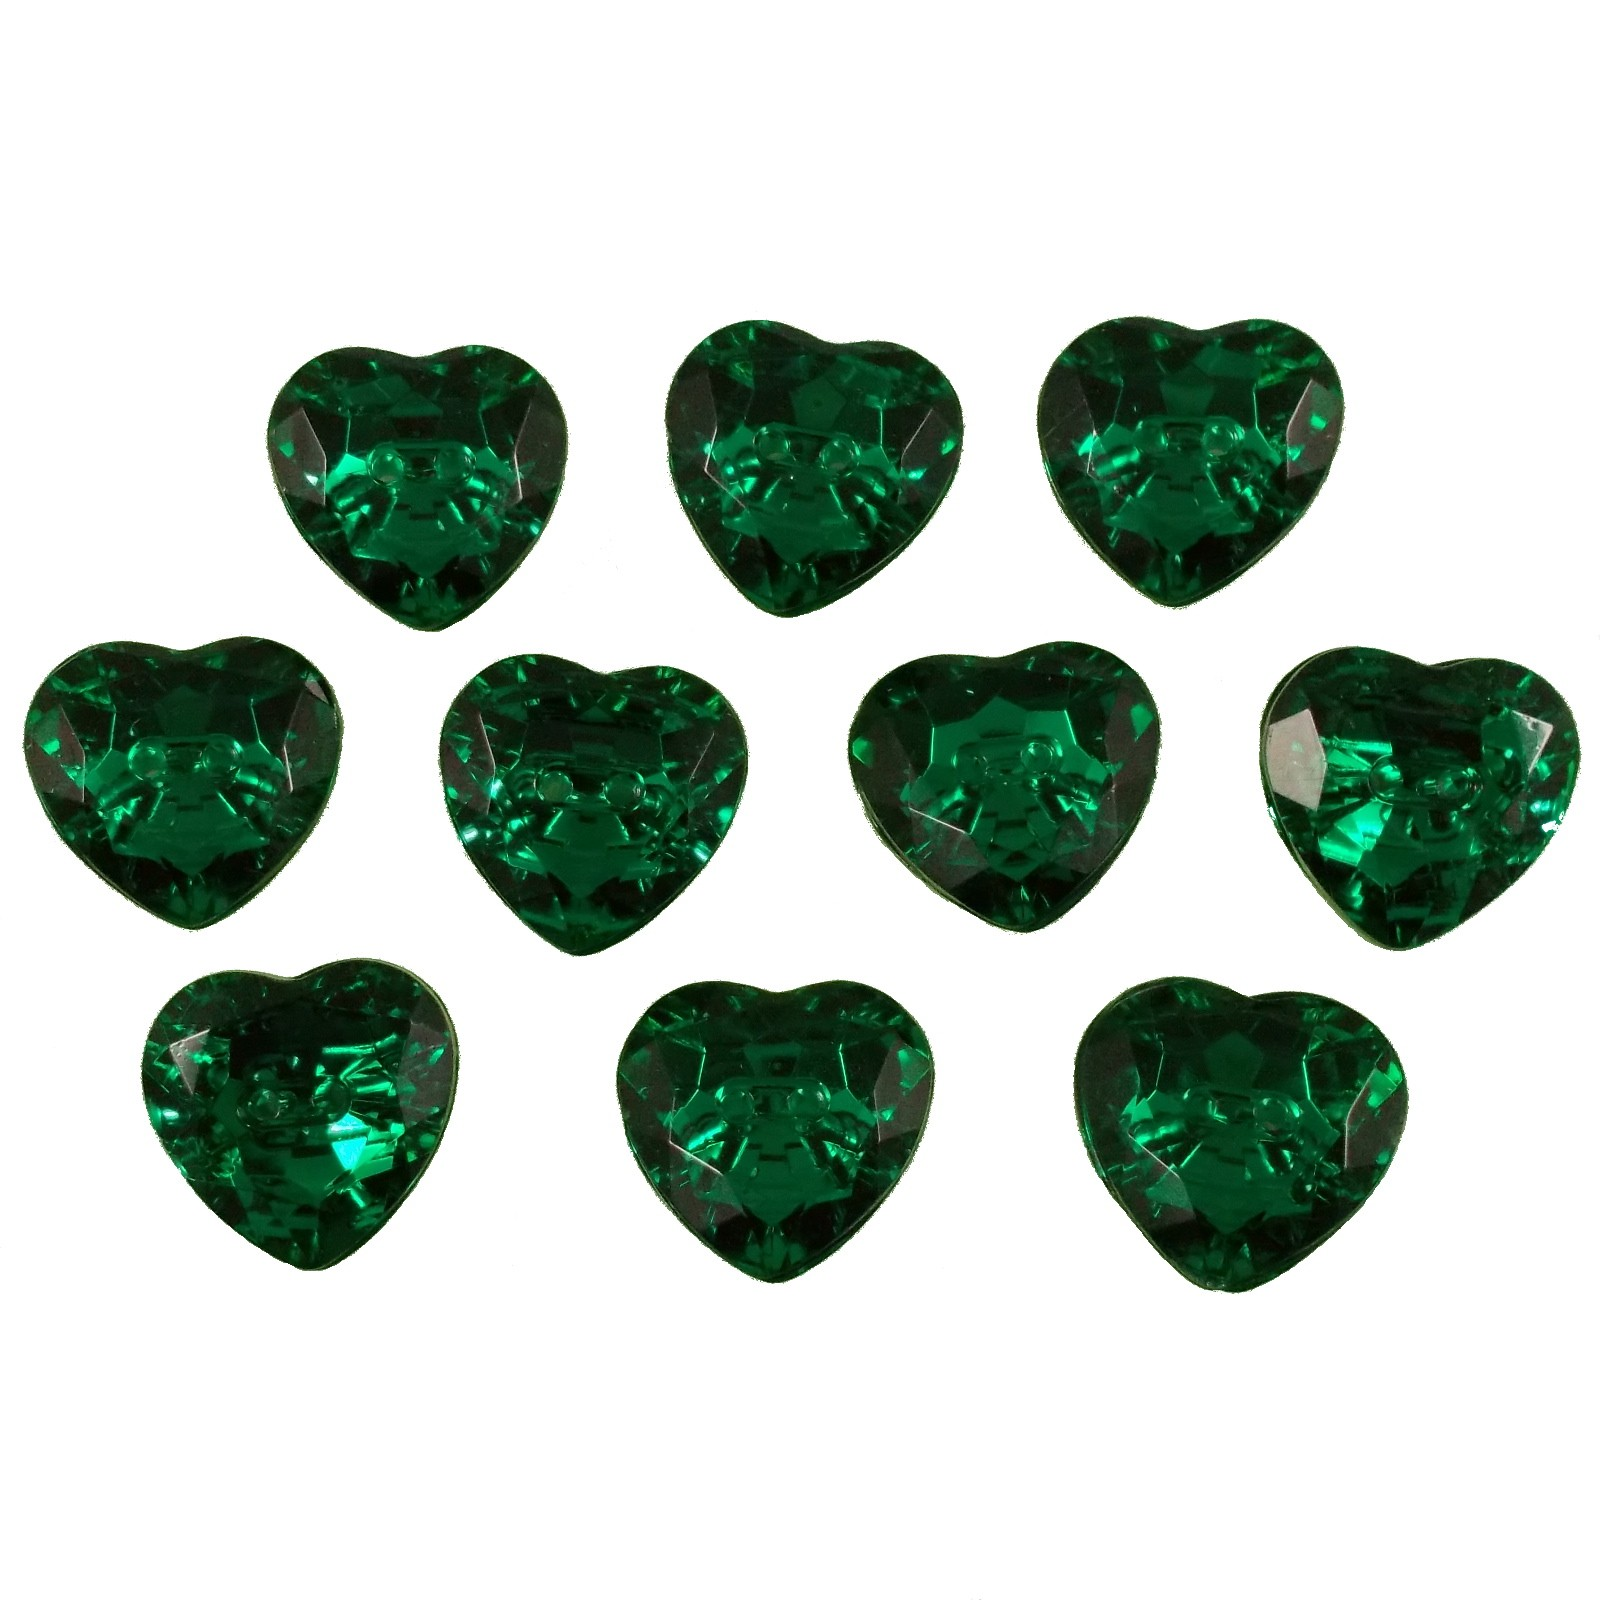 Acrylic Crystal Effect Heart Shape Buttons 16mm Green Pack of 10